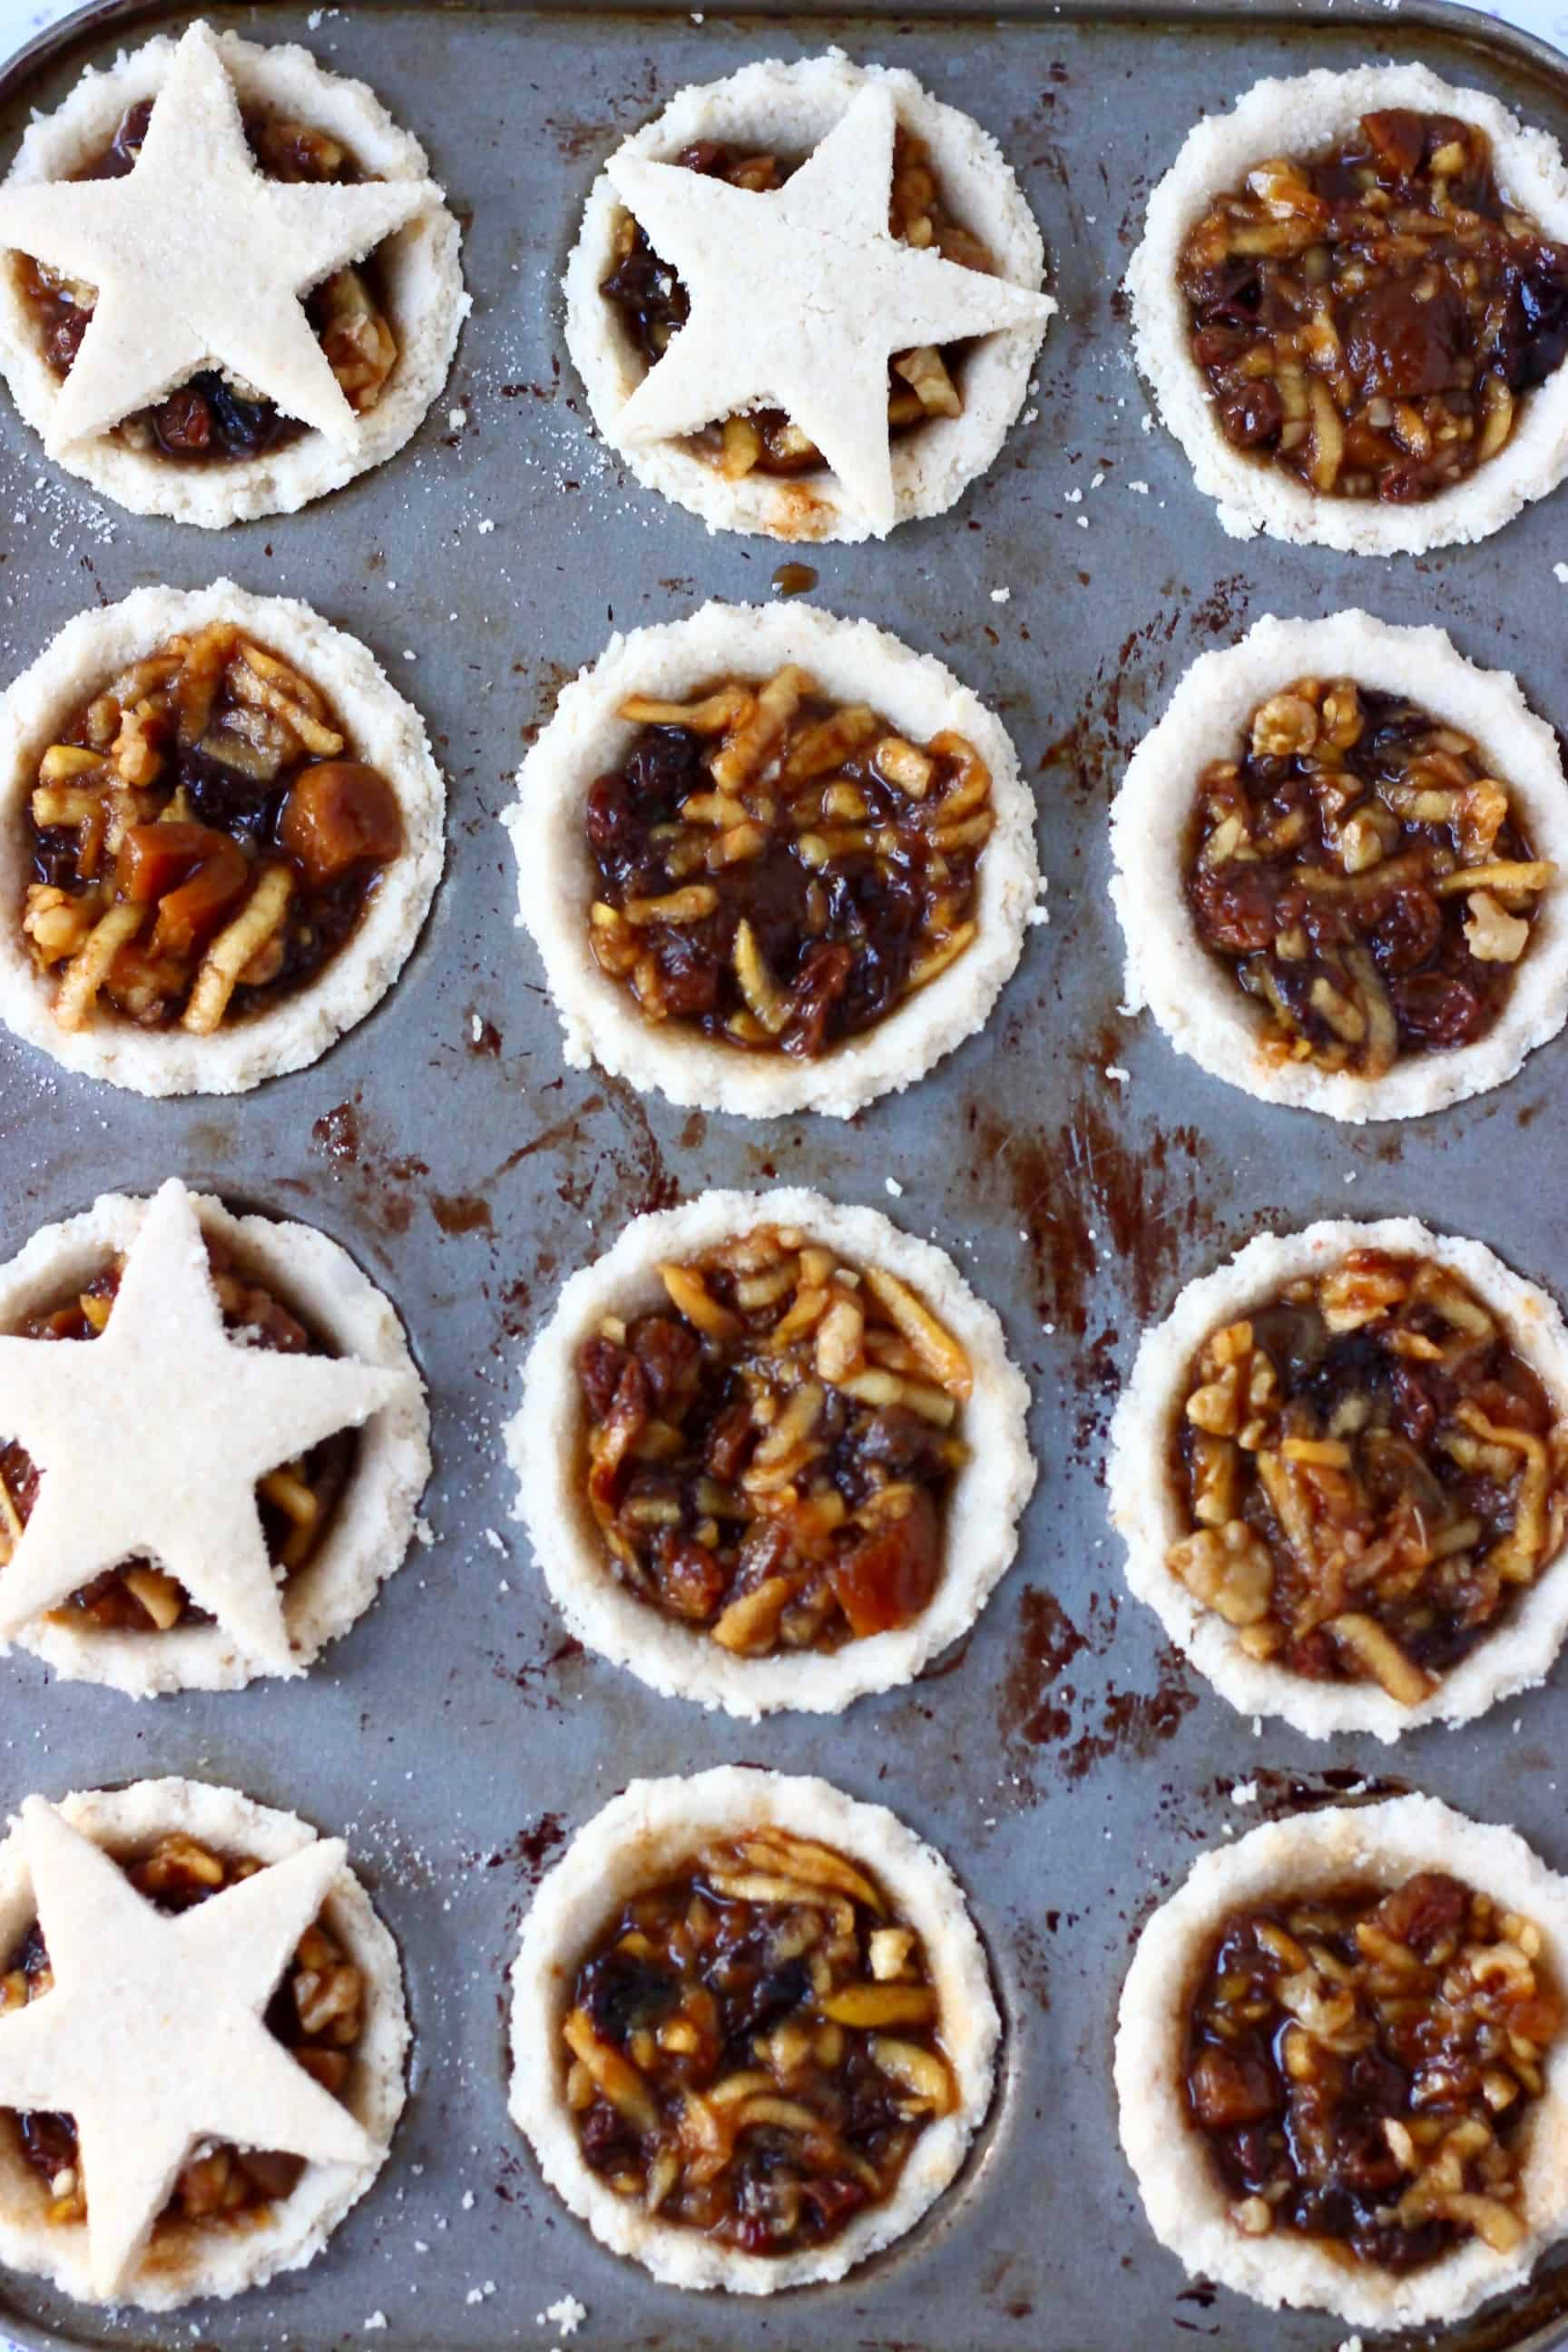 Twelve gluten-free vegan mince pies pastry crusts in a muffin tin filled with vegan mincemeat